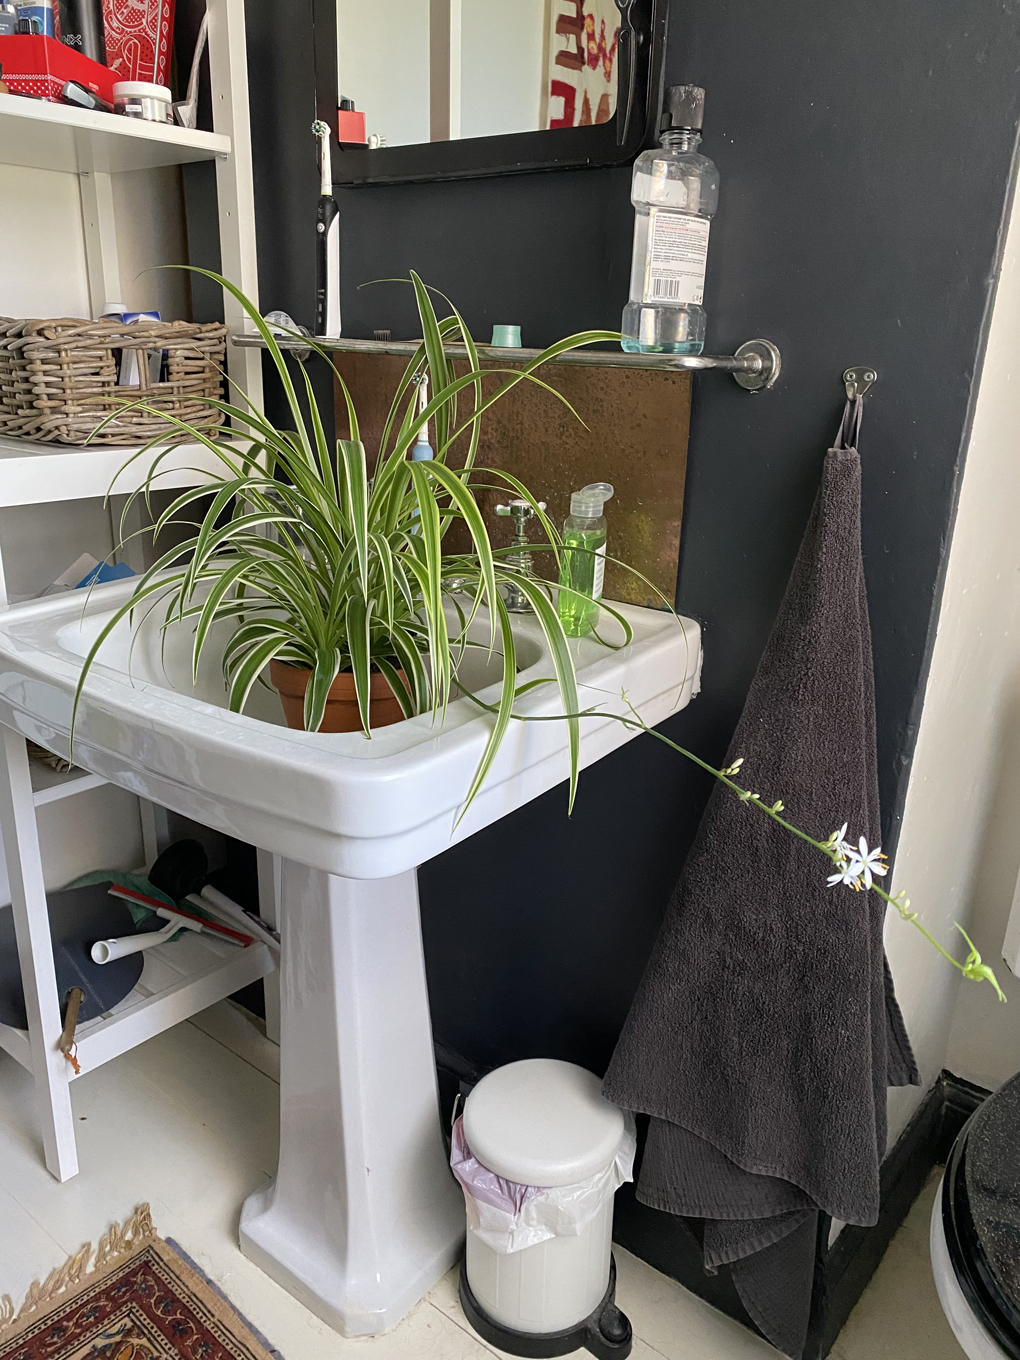 A spider plant sitting in a bathroom sink. One of the spider plants tendrils is stretching out across the bathroom in search of the sun.